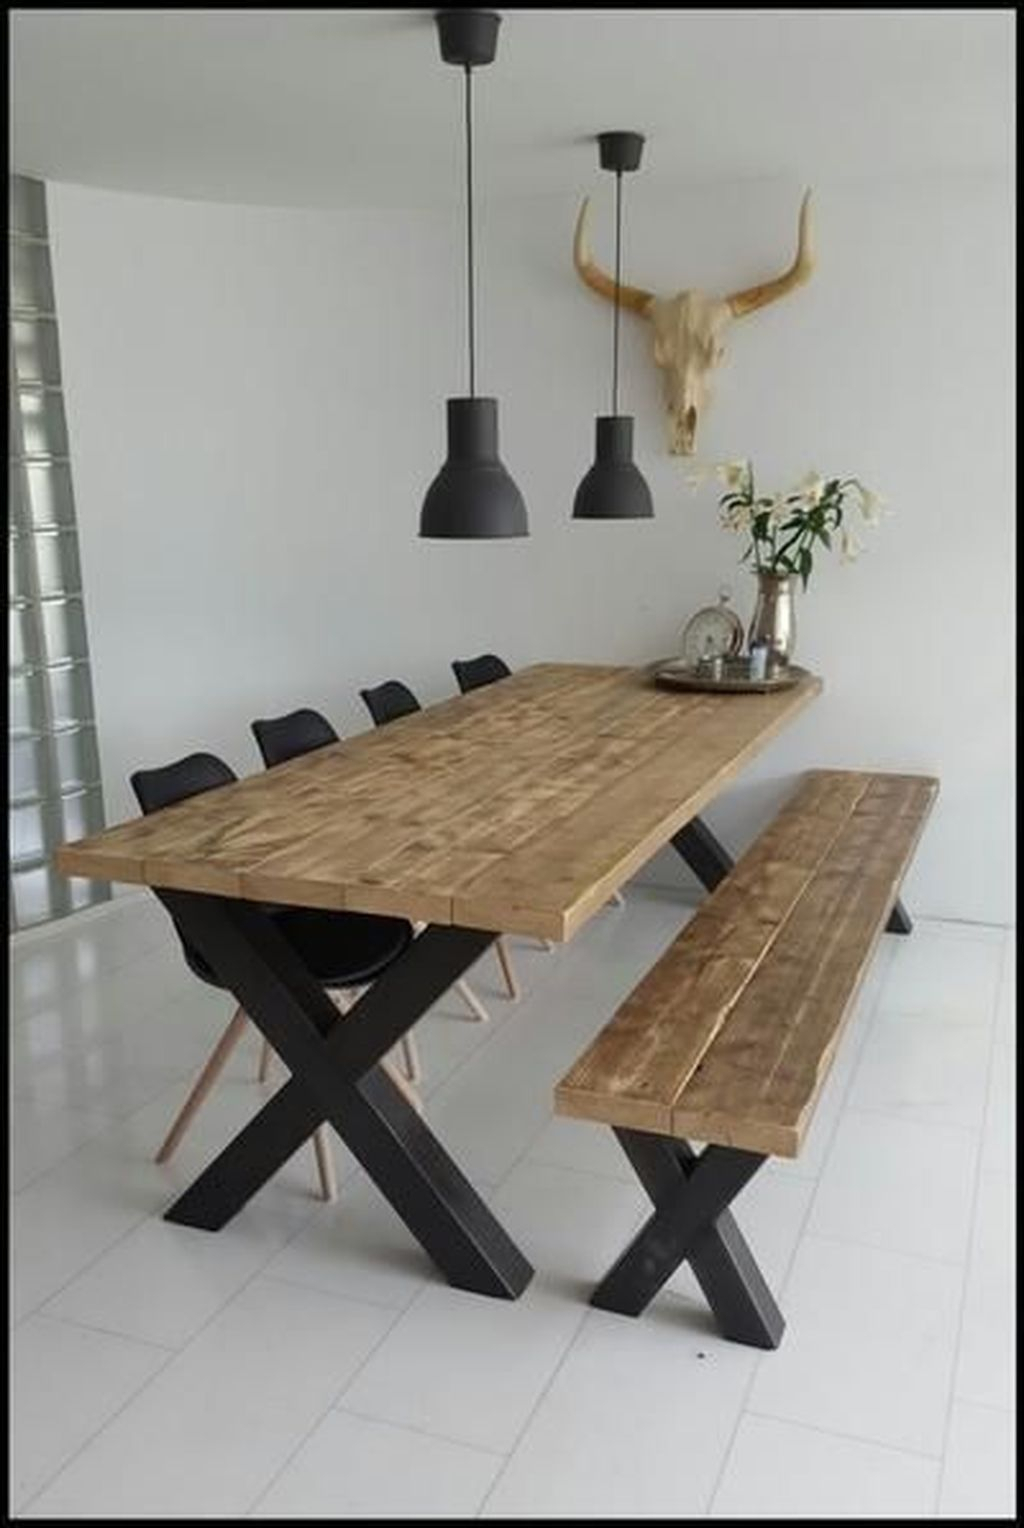 49 Diy Wooden Dining Table Idea In 2020 | Dining Room With Regard To 2017 49'' Dining Tables (View 2 of 15)